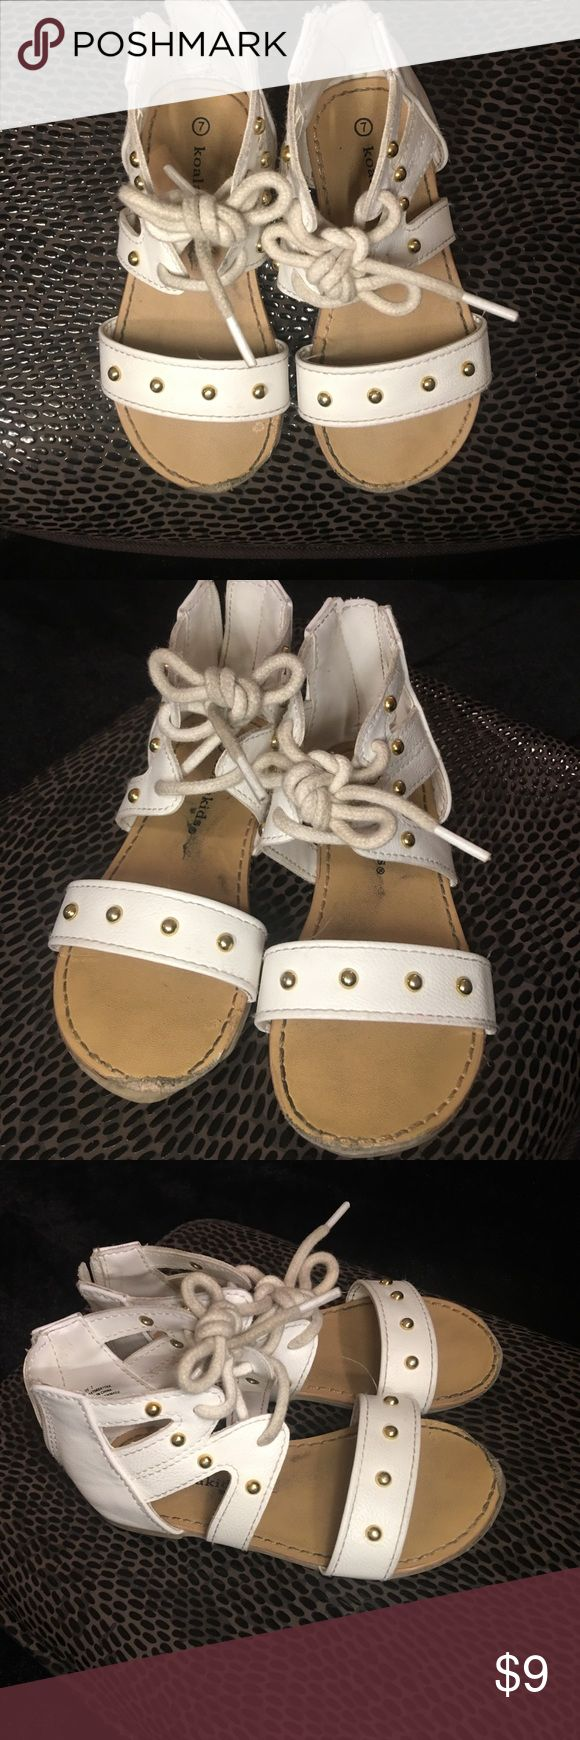 White Toddler Sandals w/ Gold Studs!!!⭐️ White Toddler Sandals w/ Gold Studs!!!⭐️ Good condition a couple of scuffs on The sole of the shoe... Koala Kids Shoes Sandals & Flip Flops